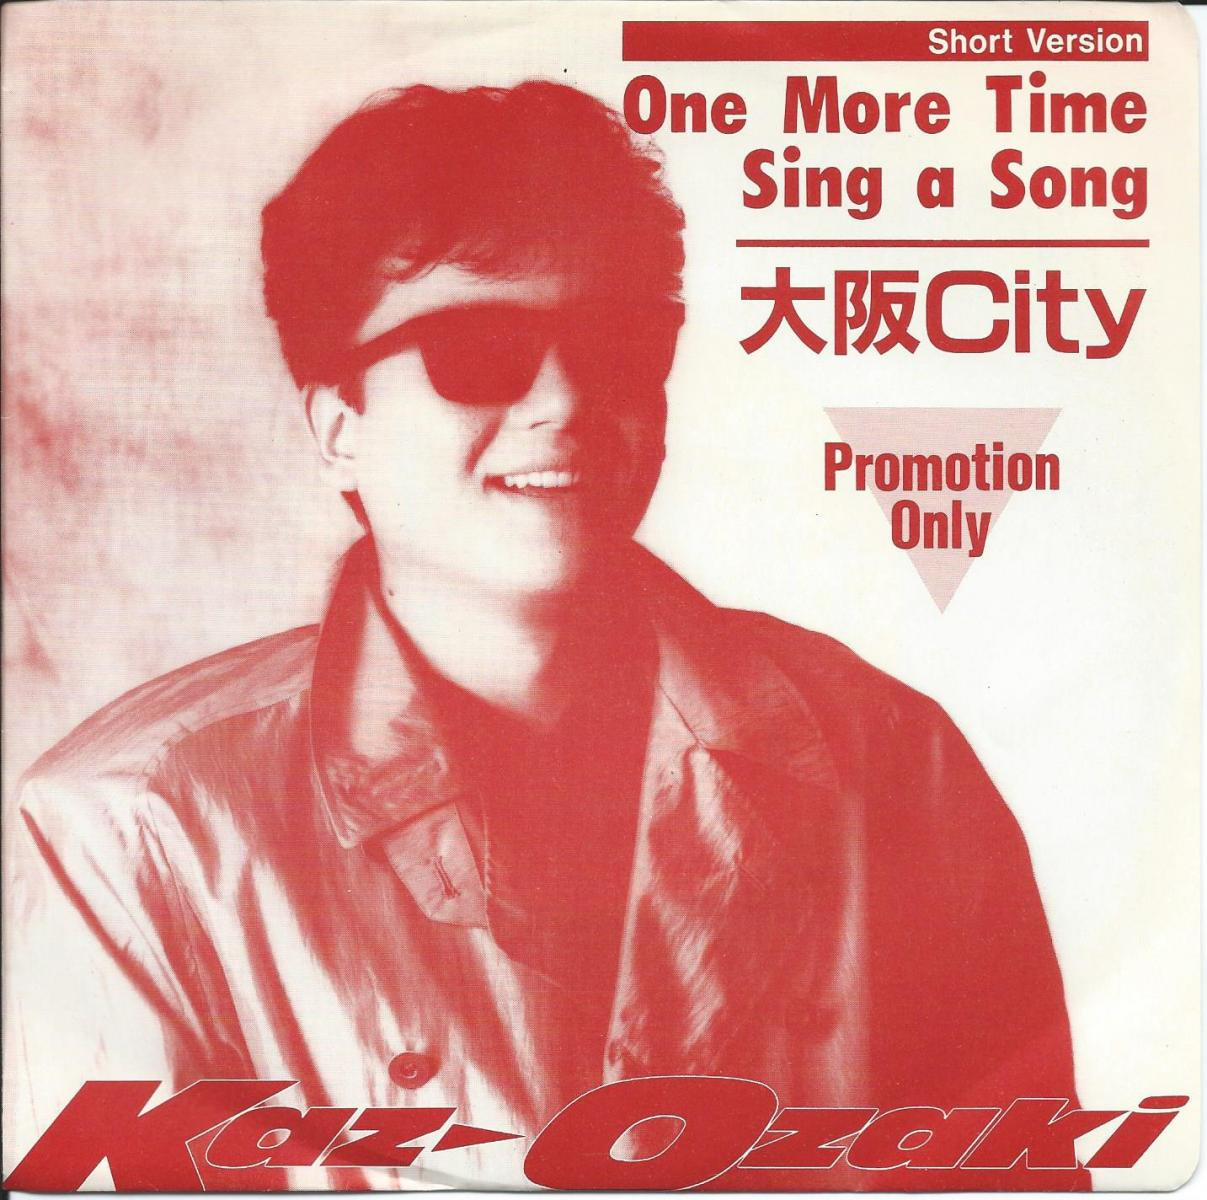 KAZ OZAKI (尾崎和行) / ONE MORE TIME SING A SONG / 大阪CITY (7